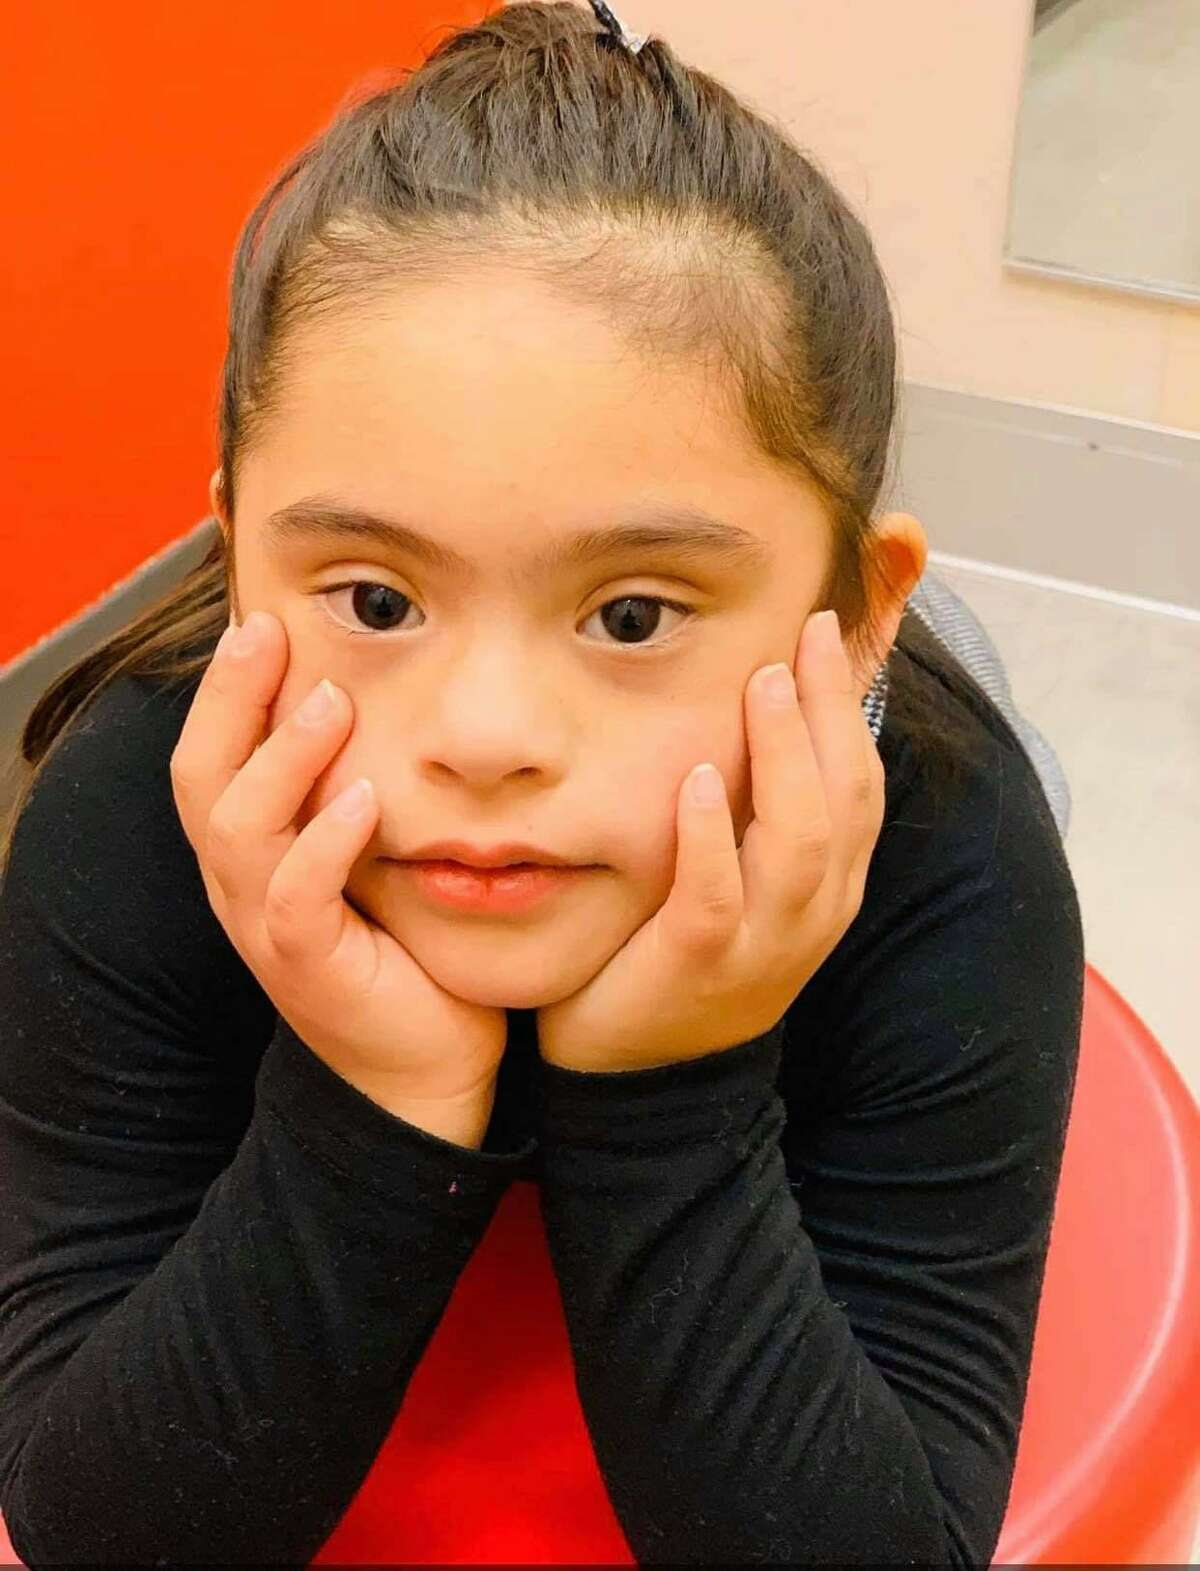 Laredo's Isabella Alvarez was chosen as part of a national video spot broadcast in Times Square for the National Down Syndrome Society.